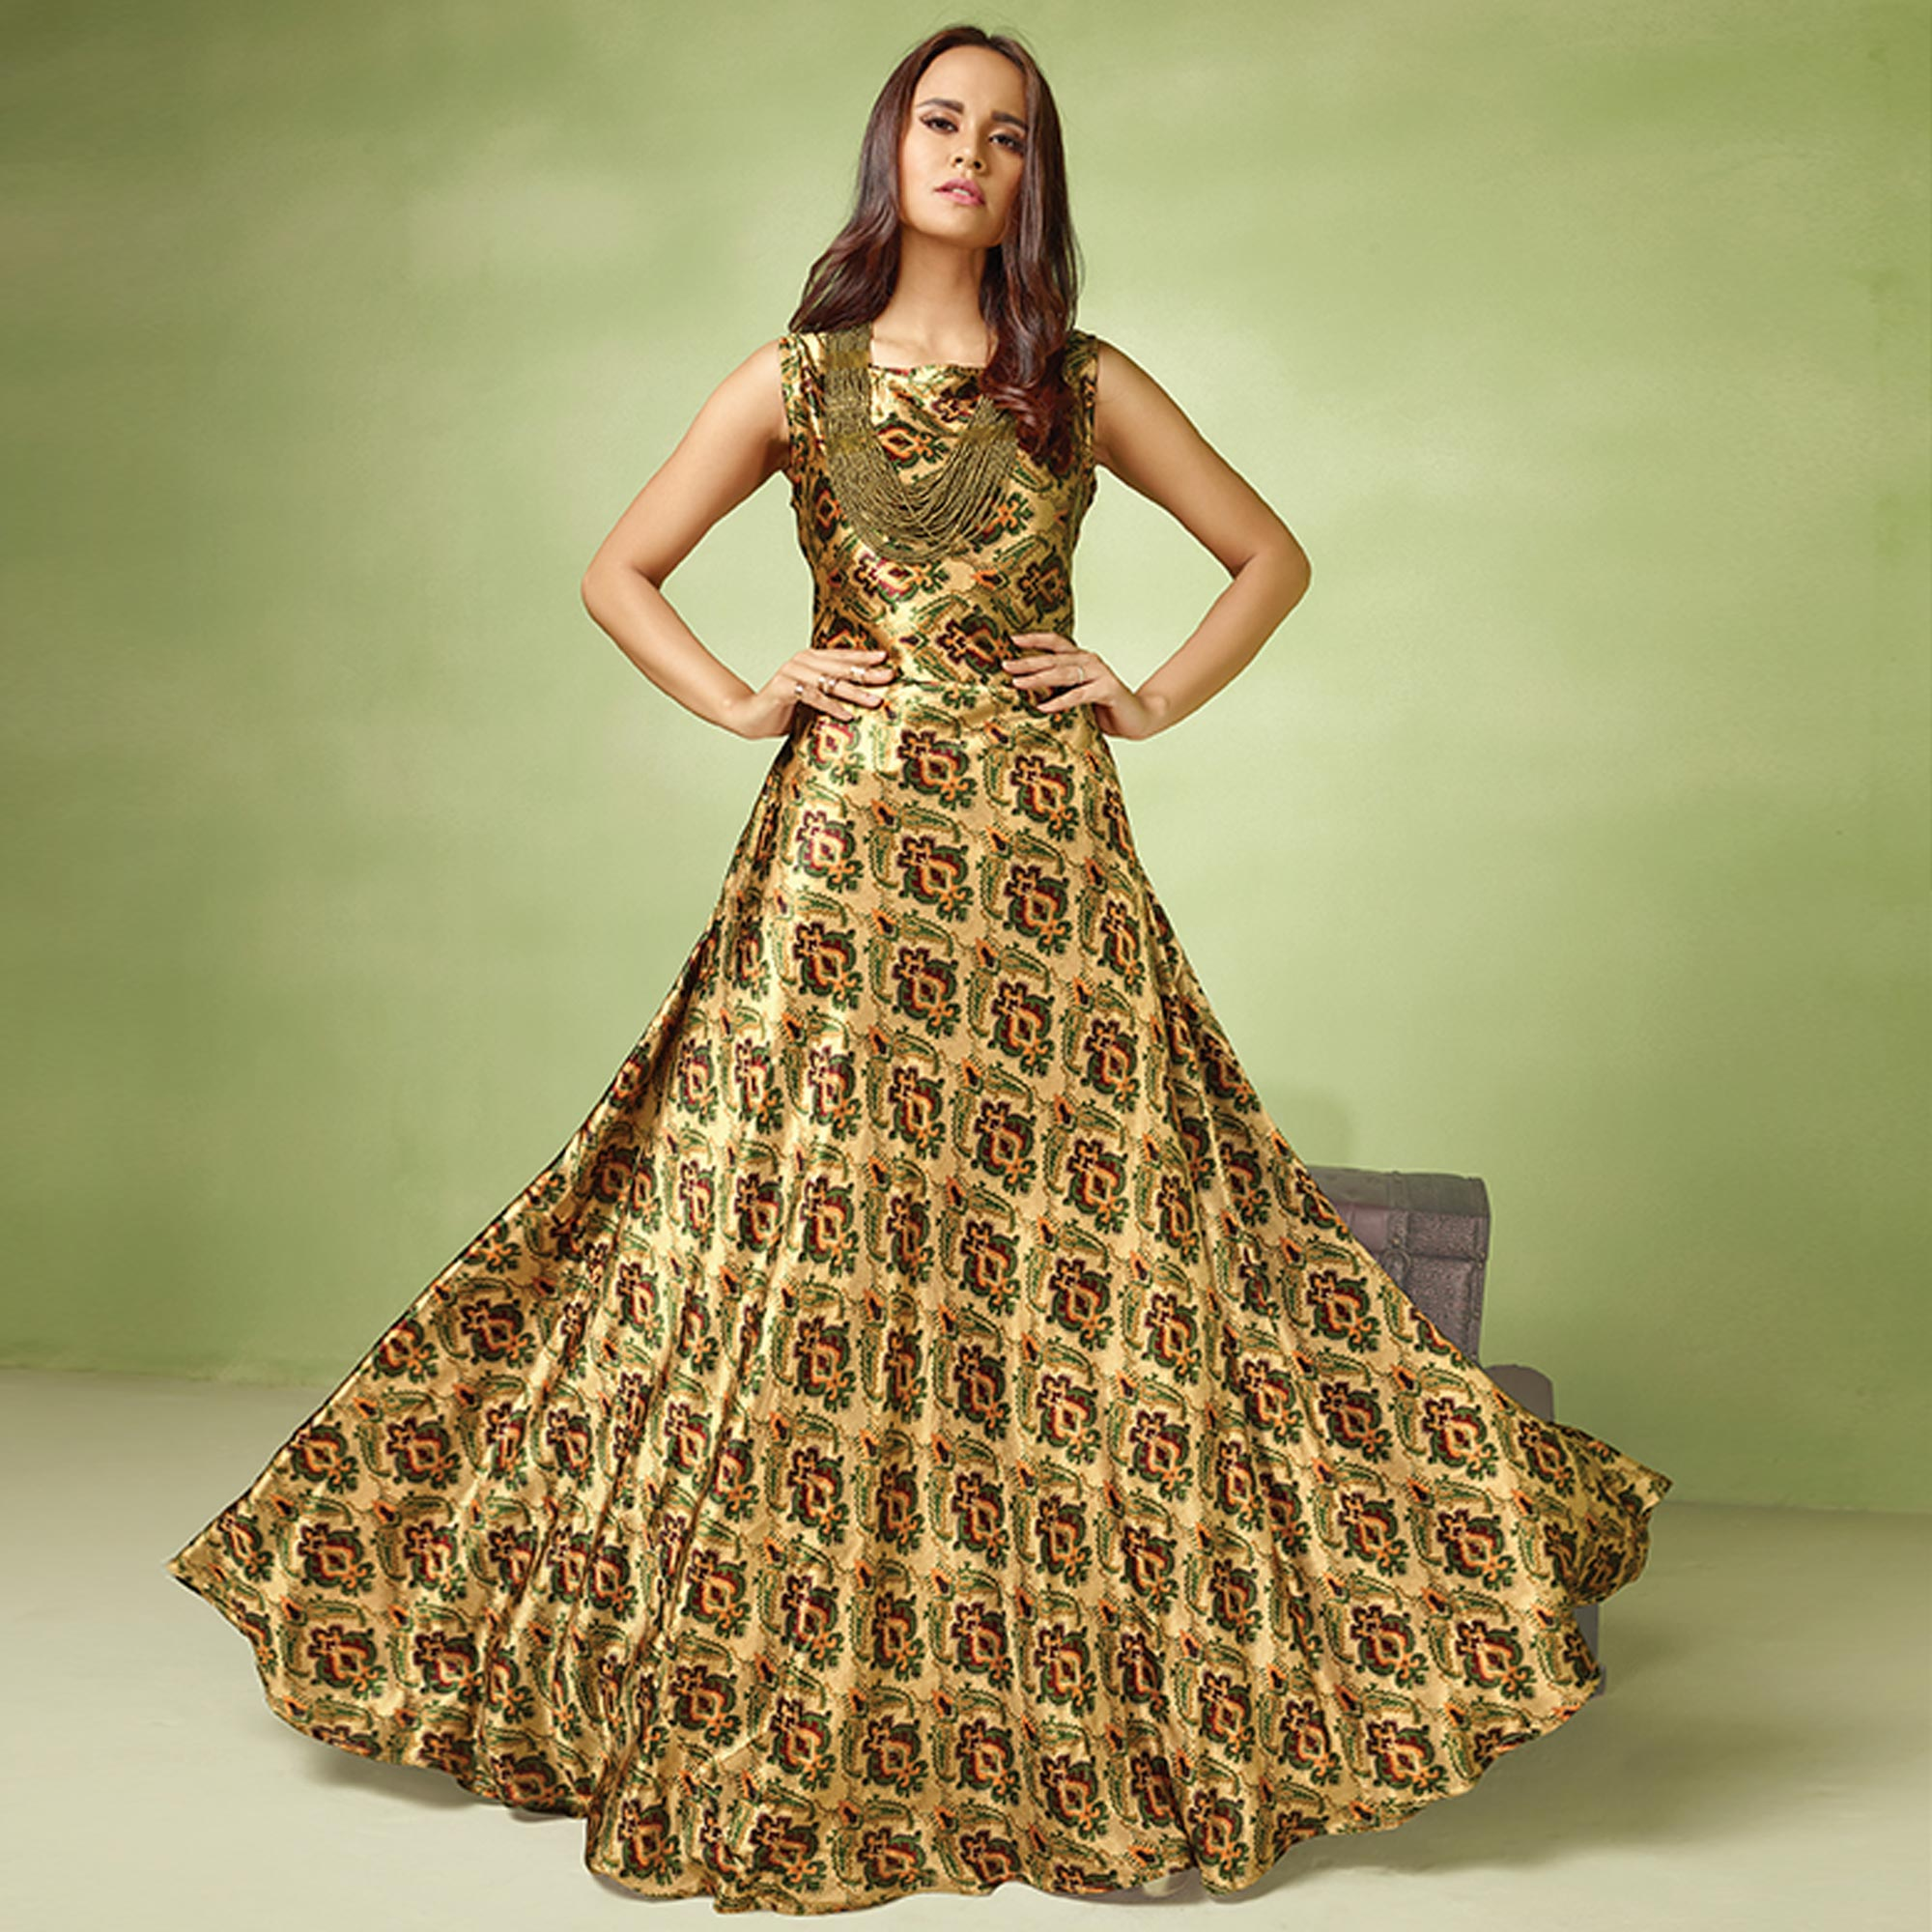 Classy Beige-Green Colored Partywear Printed Satin Gown With Embroidered Organza Top